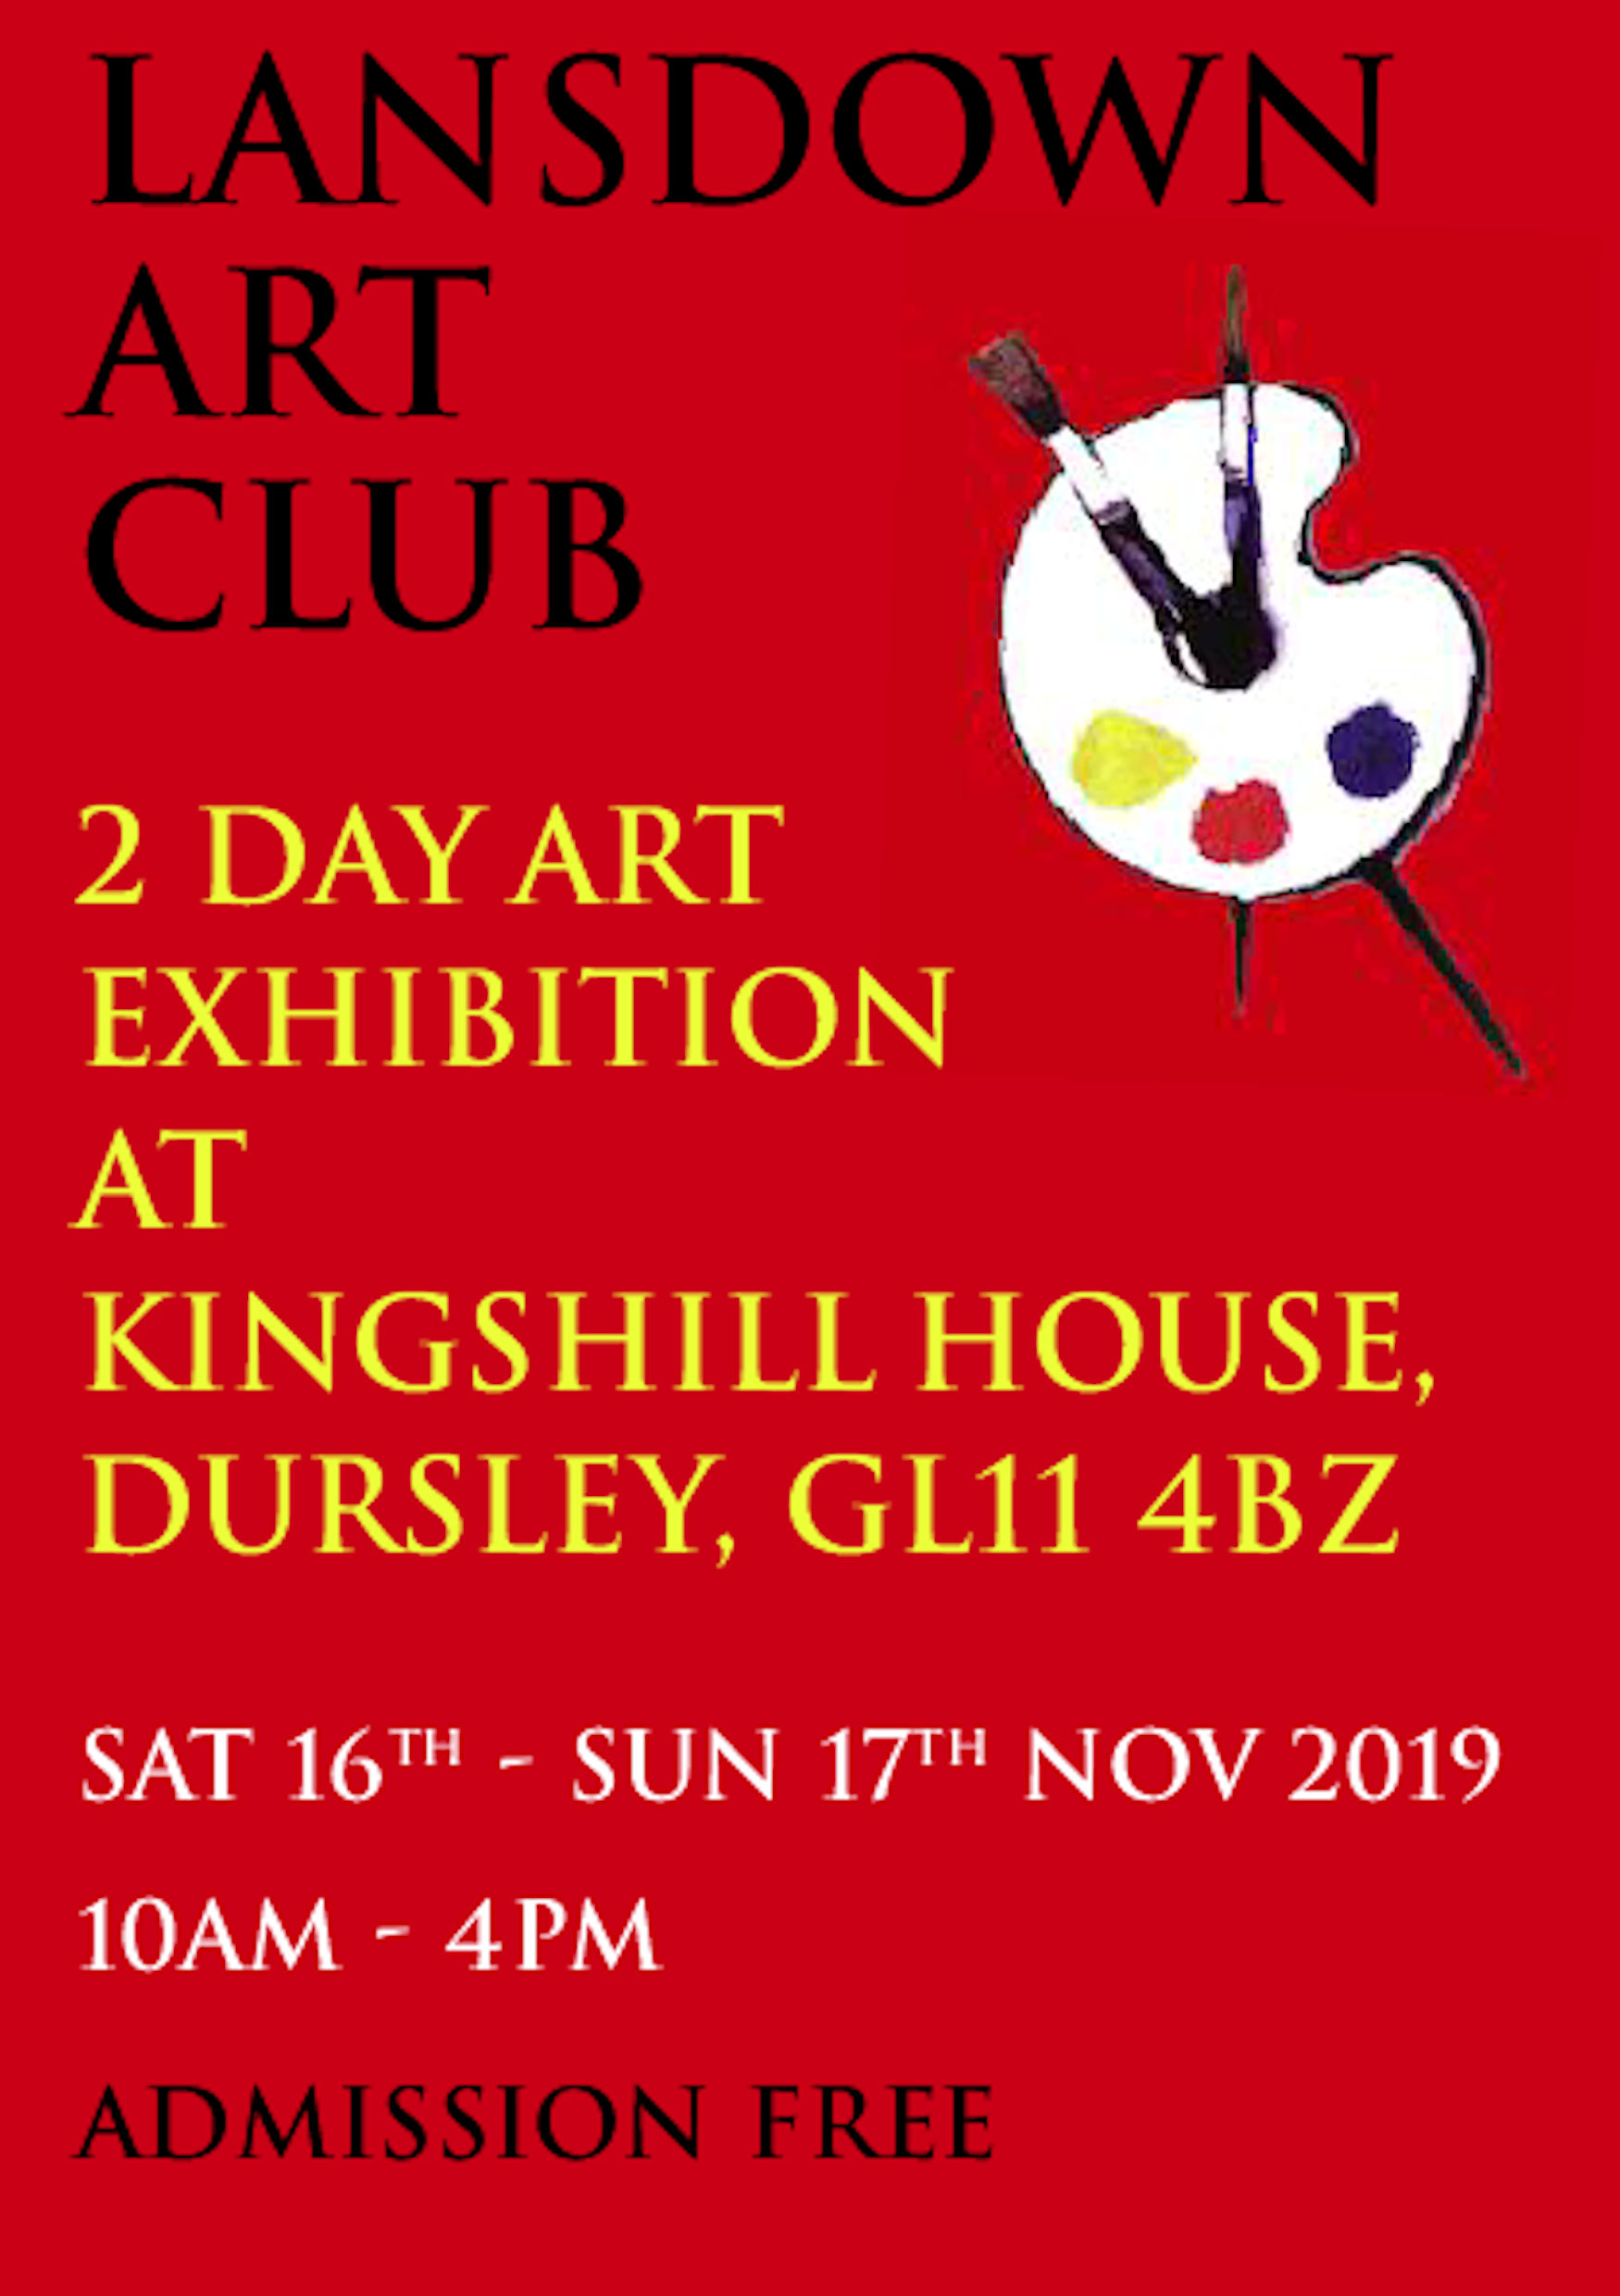 Lansdown Art Club Winter Exhibition